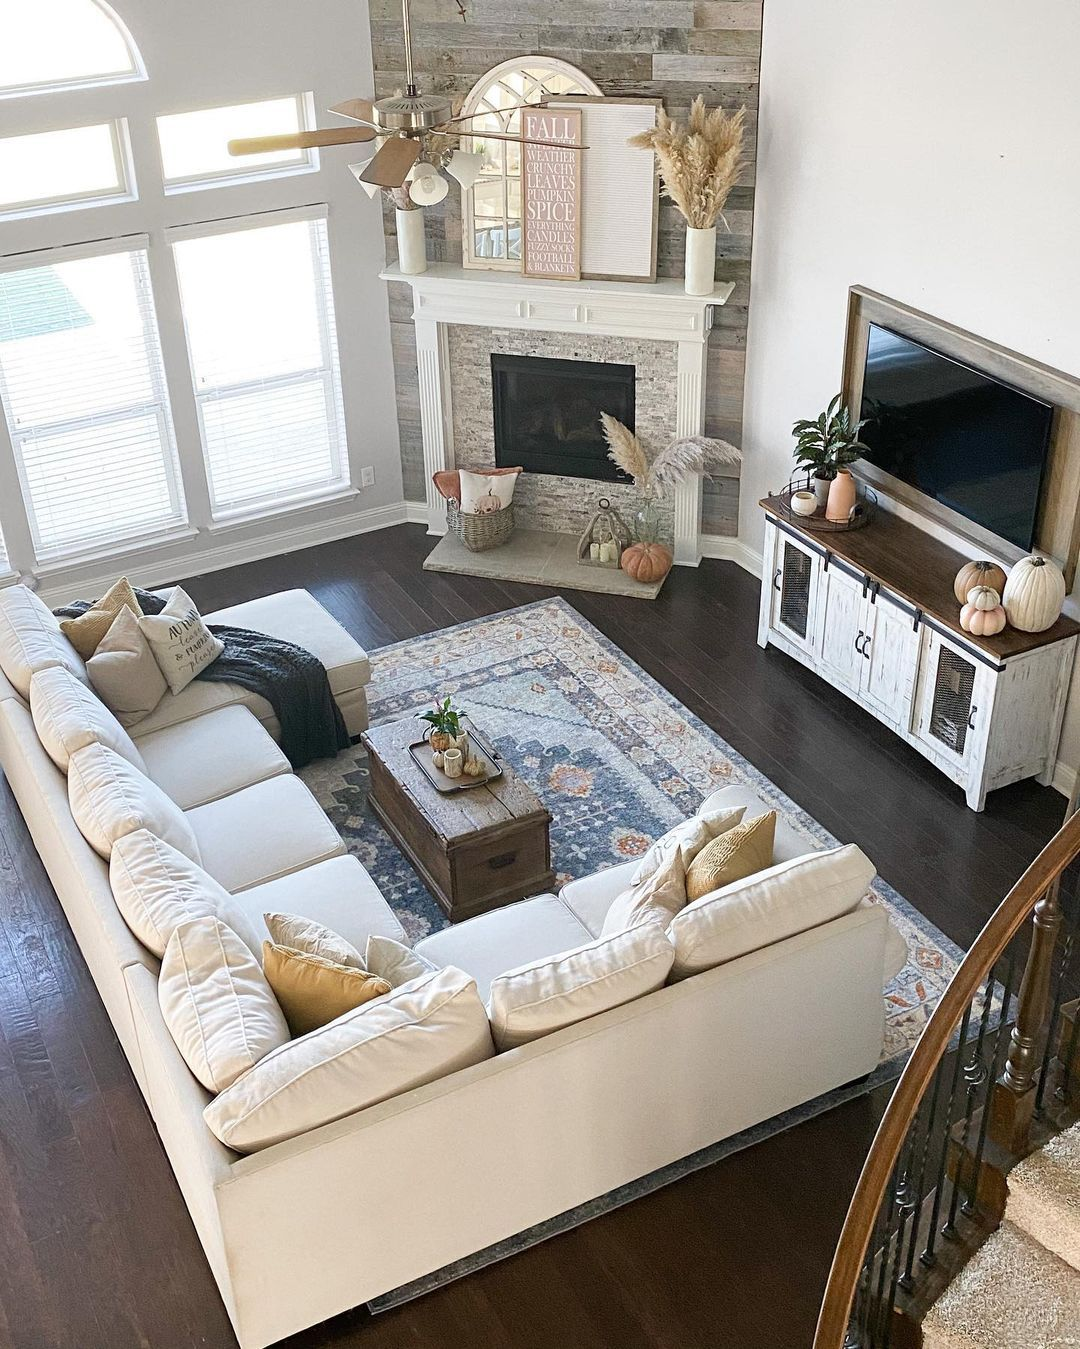 family room with corner fireplace and tv on 260 corner fireplace ideas in 2021 corner fireplace livingroom layout living room with fireplace 260 corner fireplace ideas in 2021